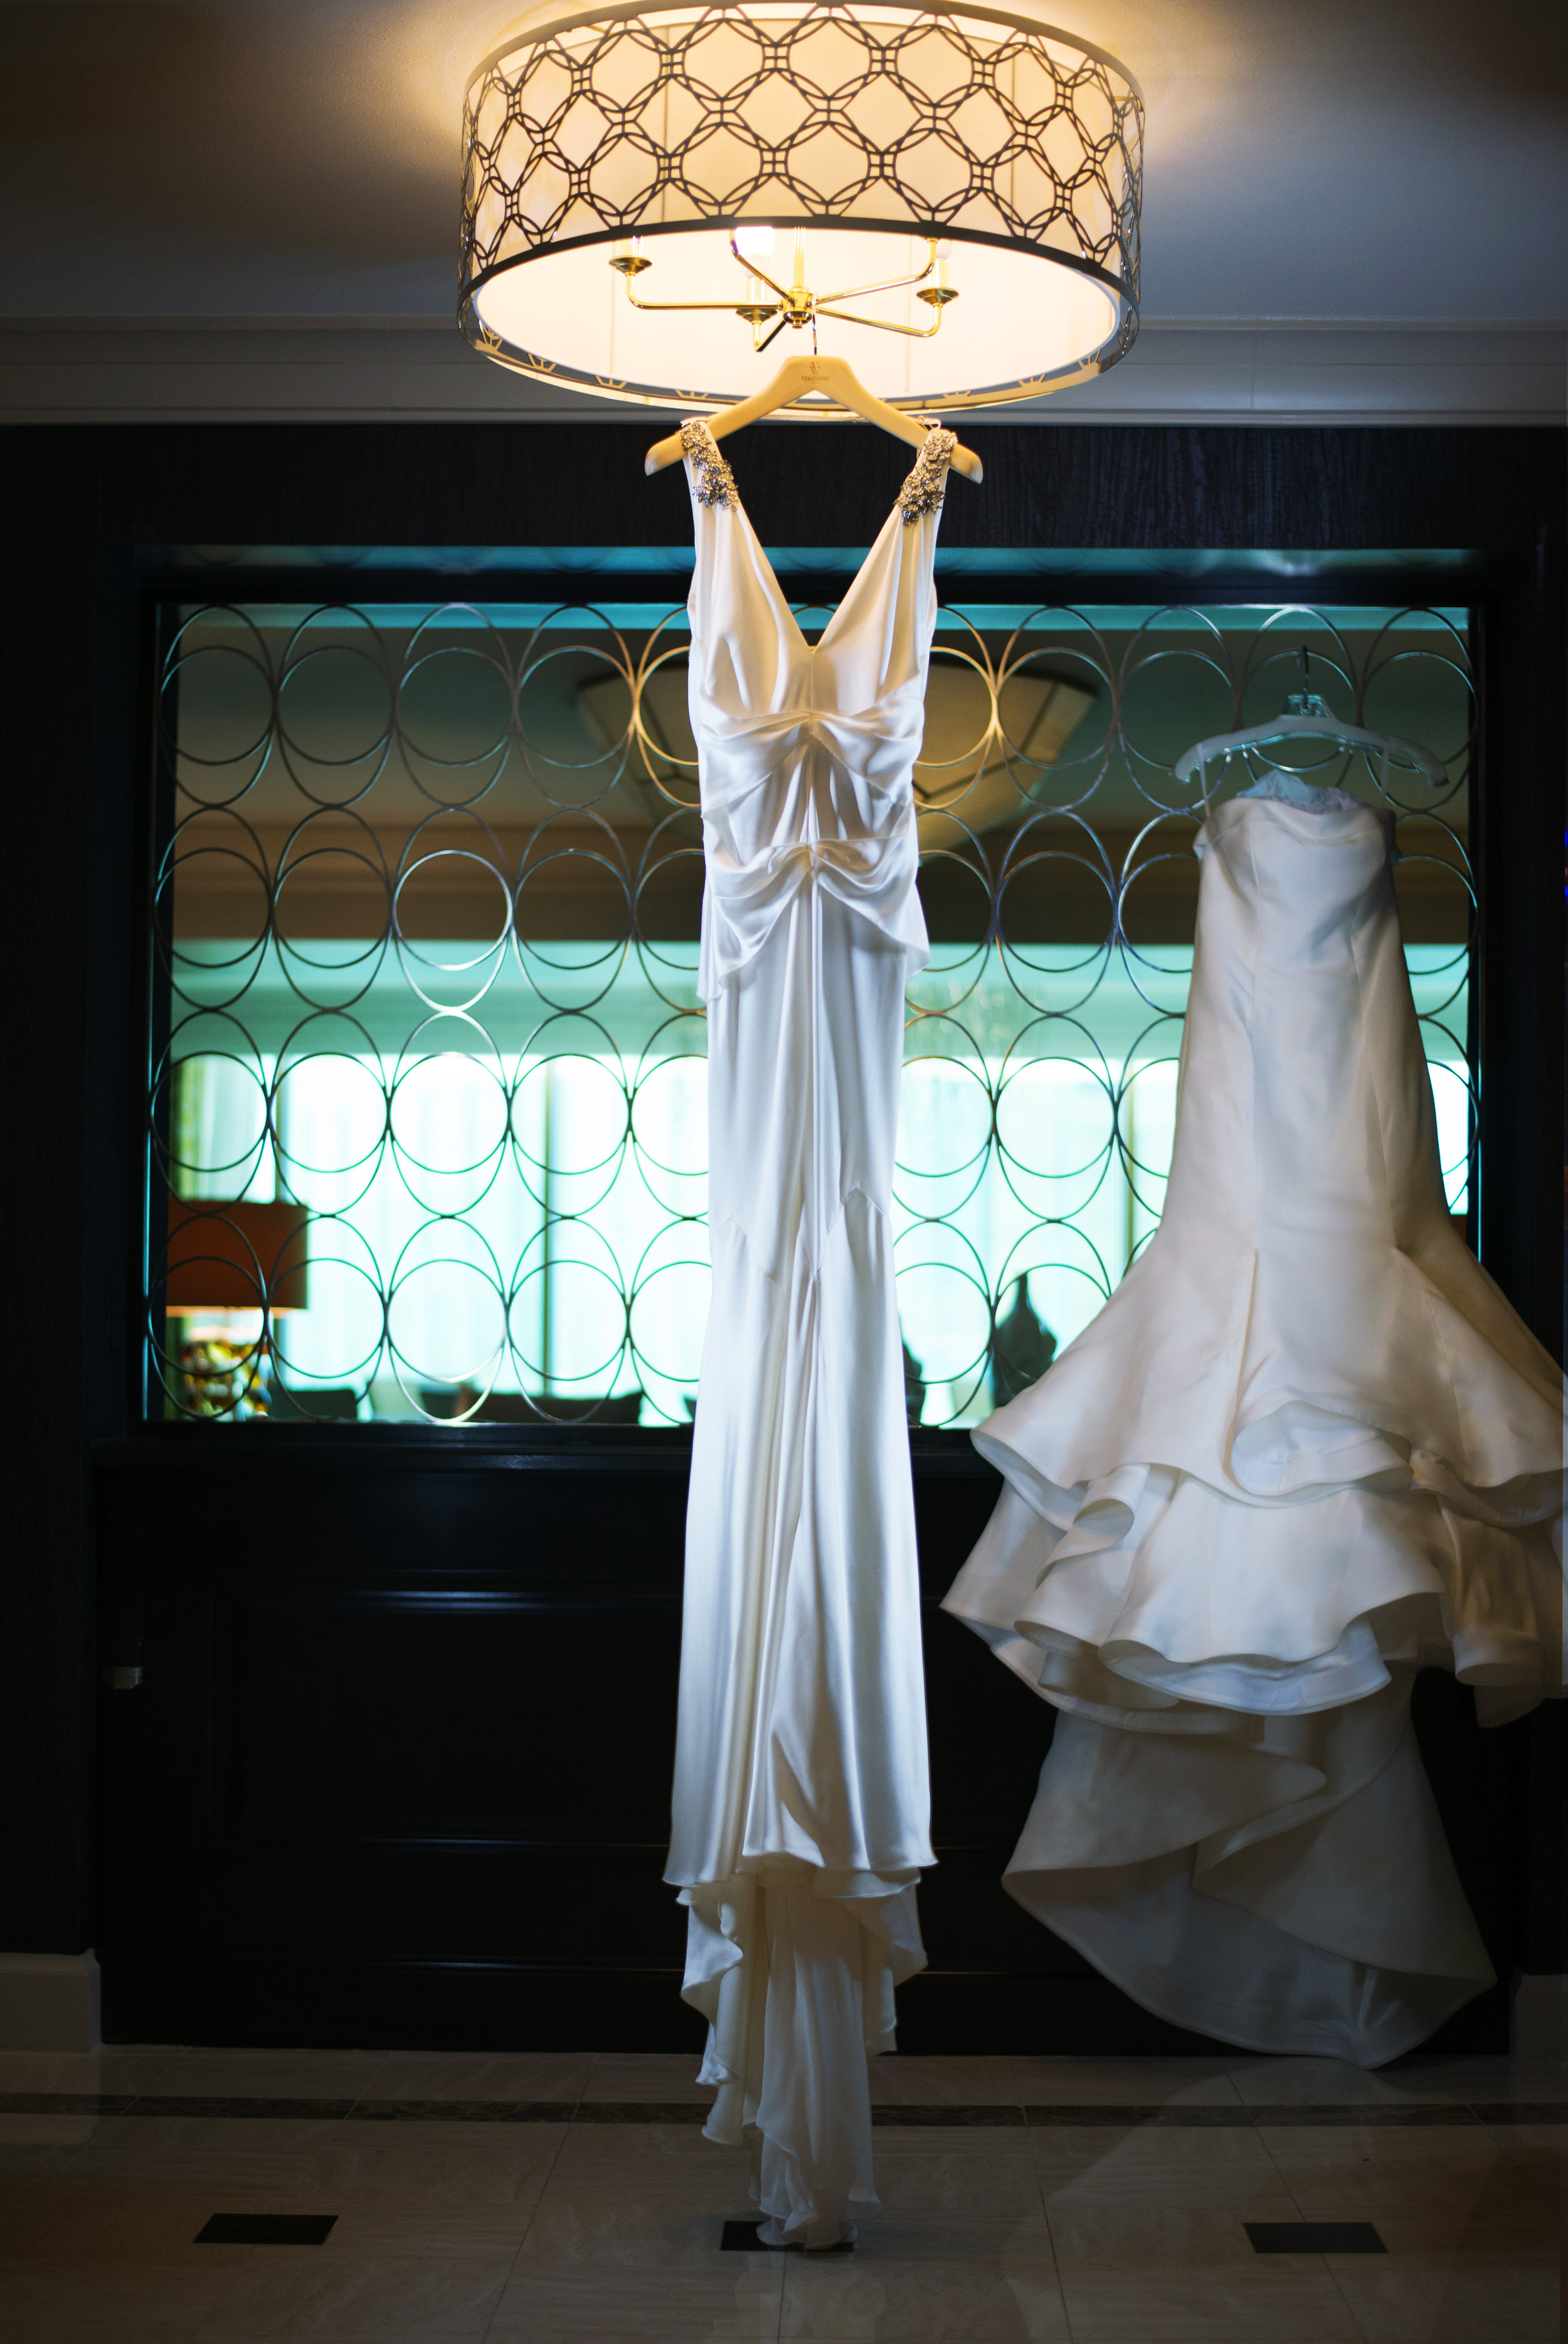 Reception wedding dress by Vera Wang at the Couture Bride Salon. Luxury Las Vegas Wedding Planner Andrea Eppolito. Wedding at Four Seasons Las Vegas. Image by AltF Photo.